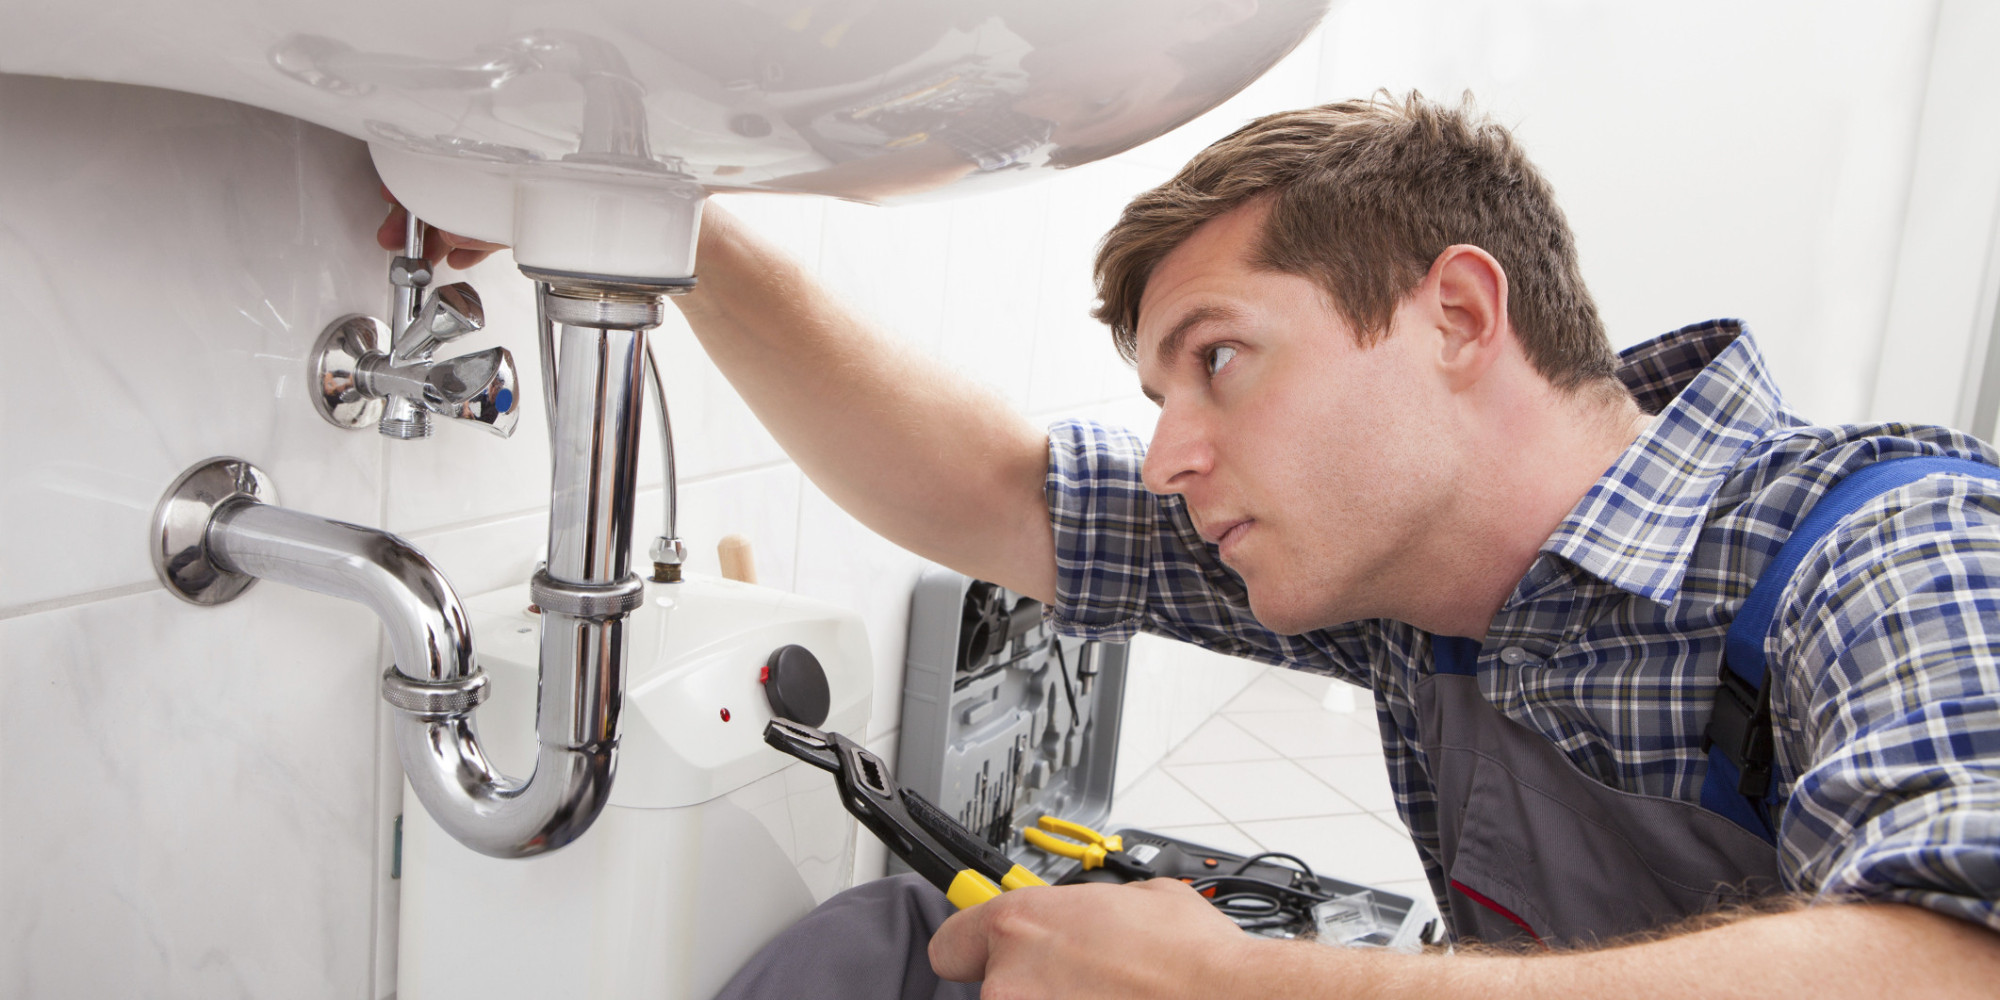 Five Tips to Help You Avoid Calling the Plumber